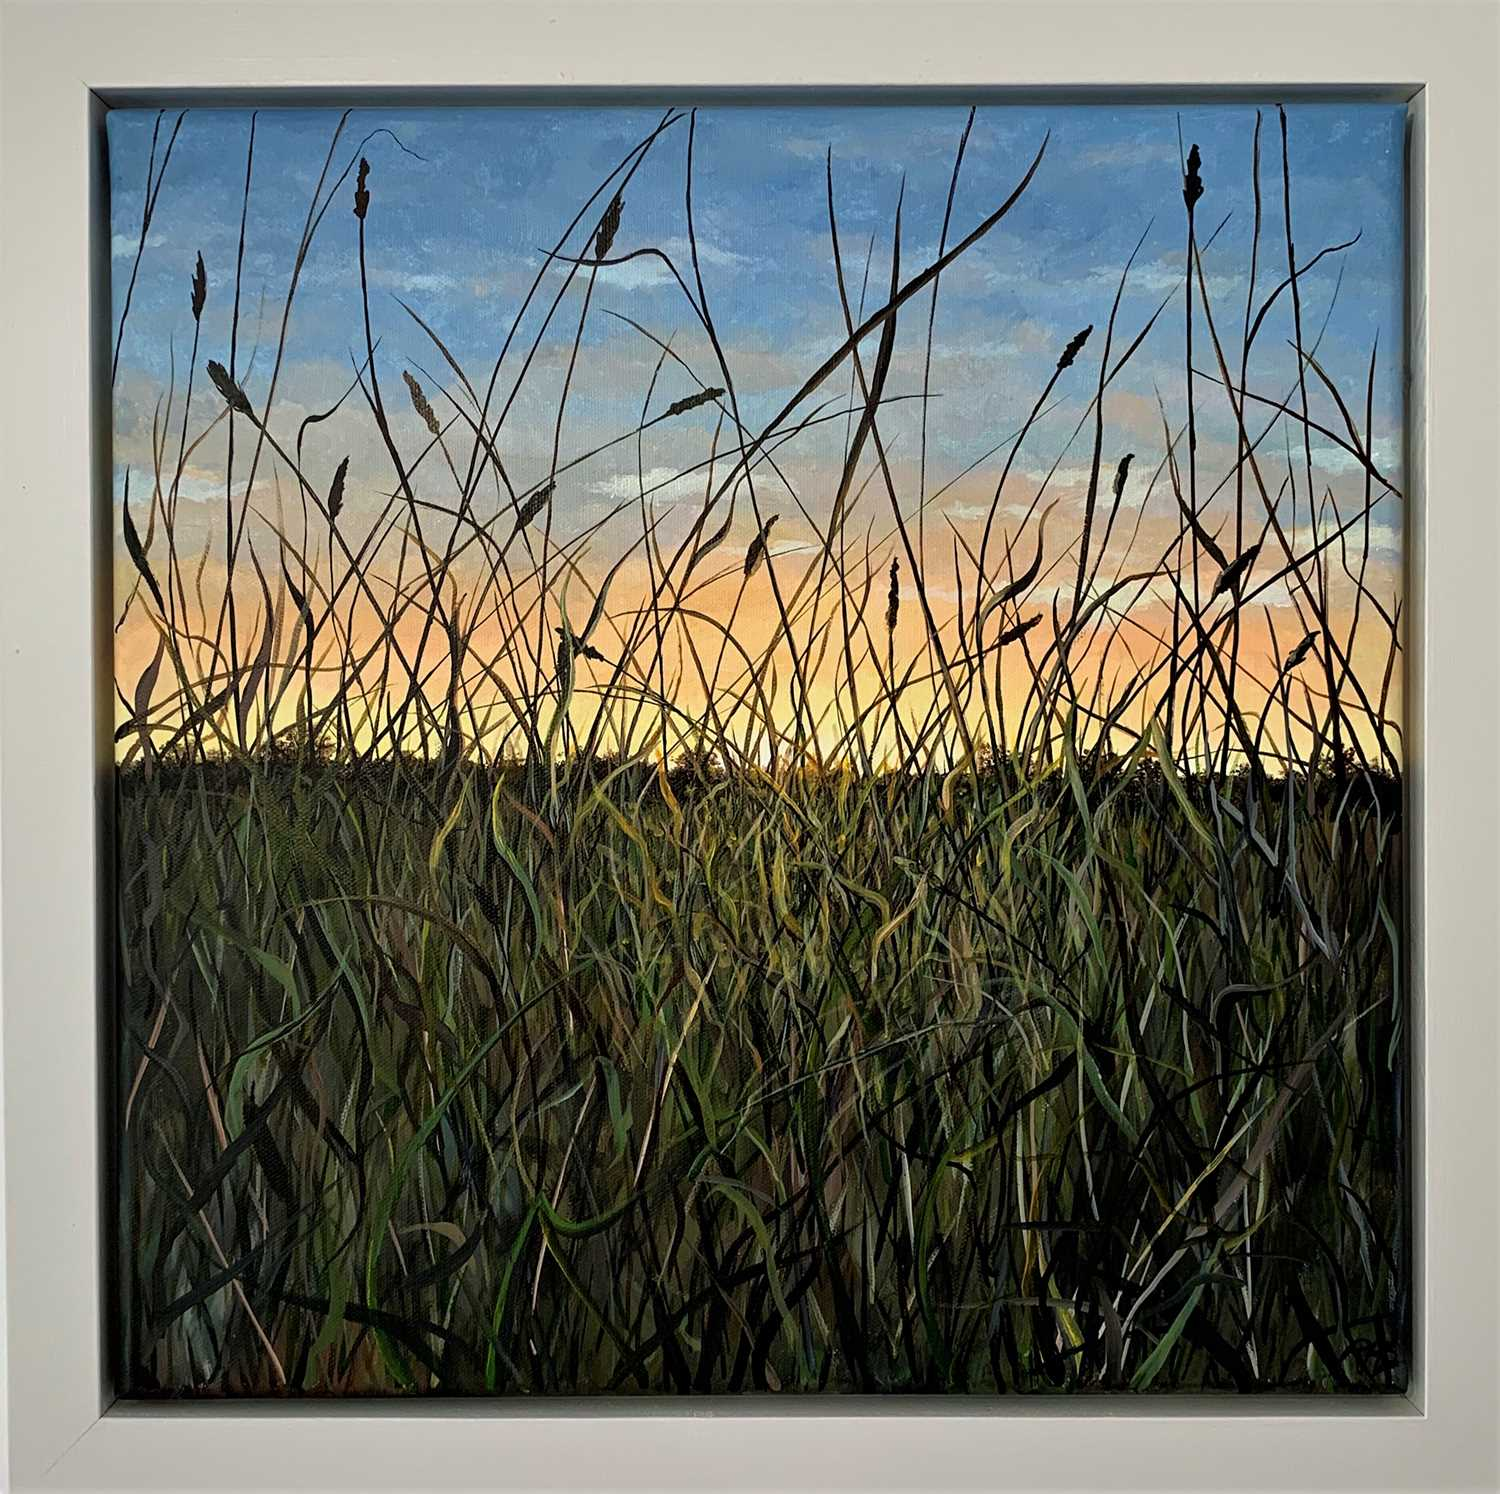 Ruth Simpson Painting The Heath Ruth Simpson is a Suffolk-based artist, living near Hessett in a - Image 2 of 2